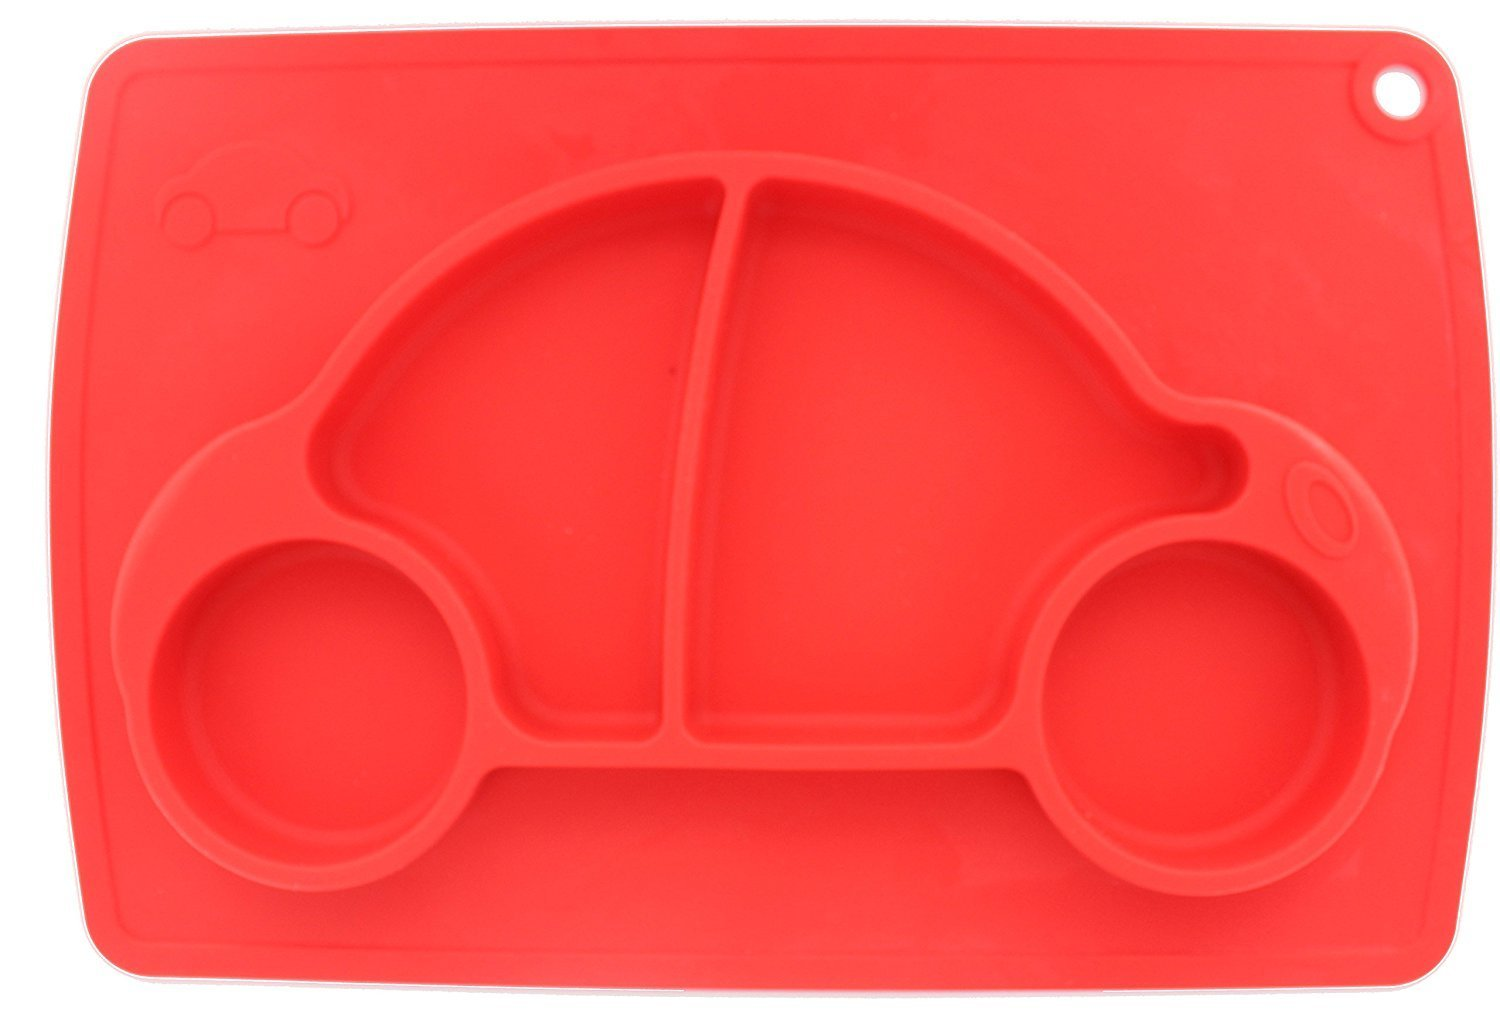 Car Silicone Baby Placemat Square Red B072614VQT